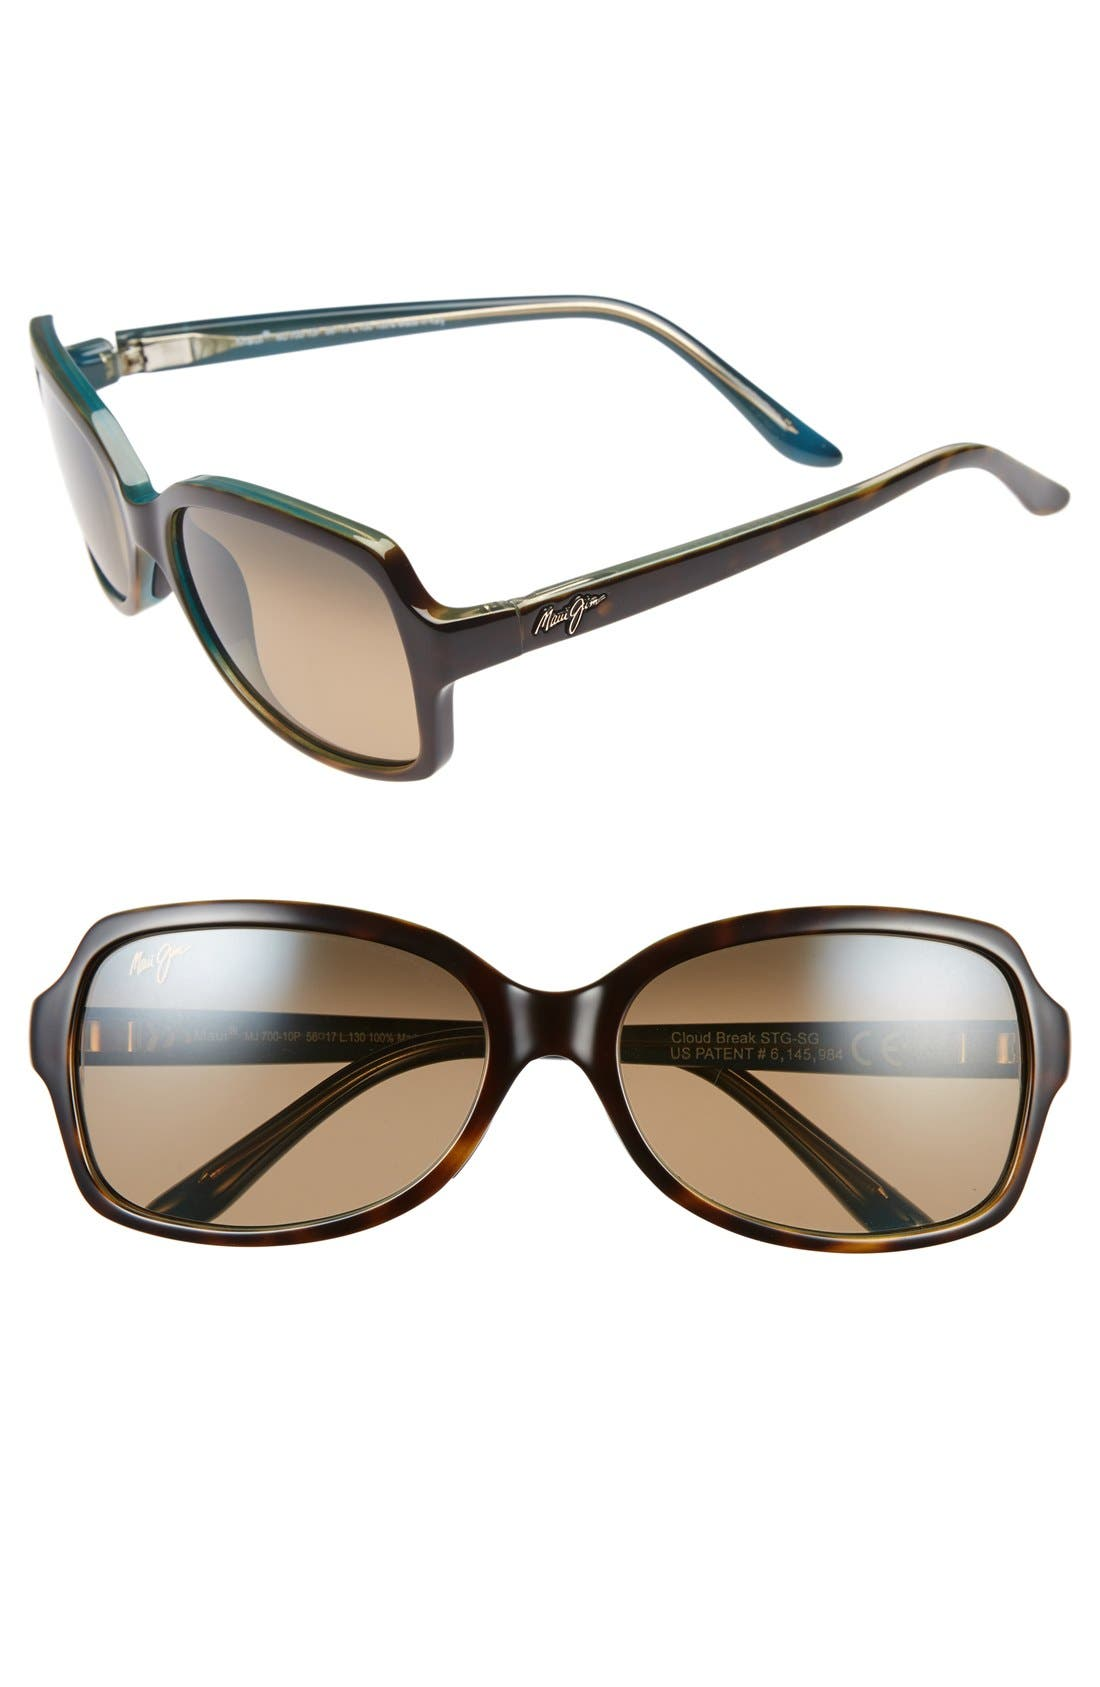 Maui Jim Cloud Break 5m Polarizedplus2 Sunglasses - Tortoise Peacock/ Blue/ Bronze